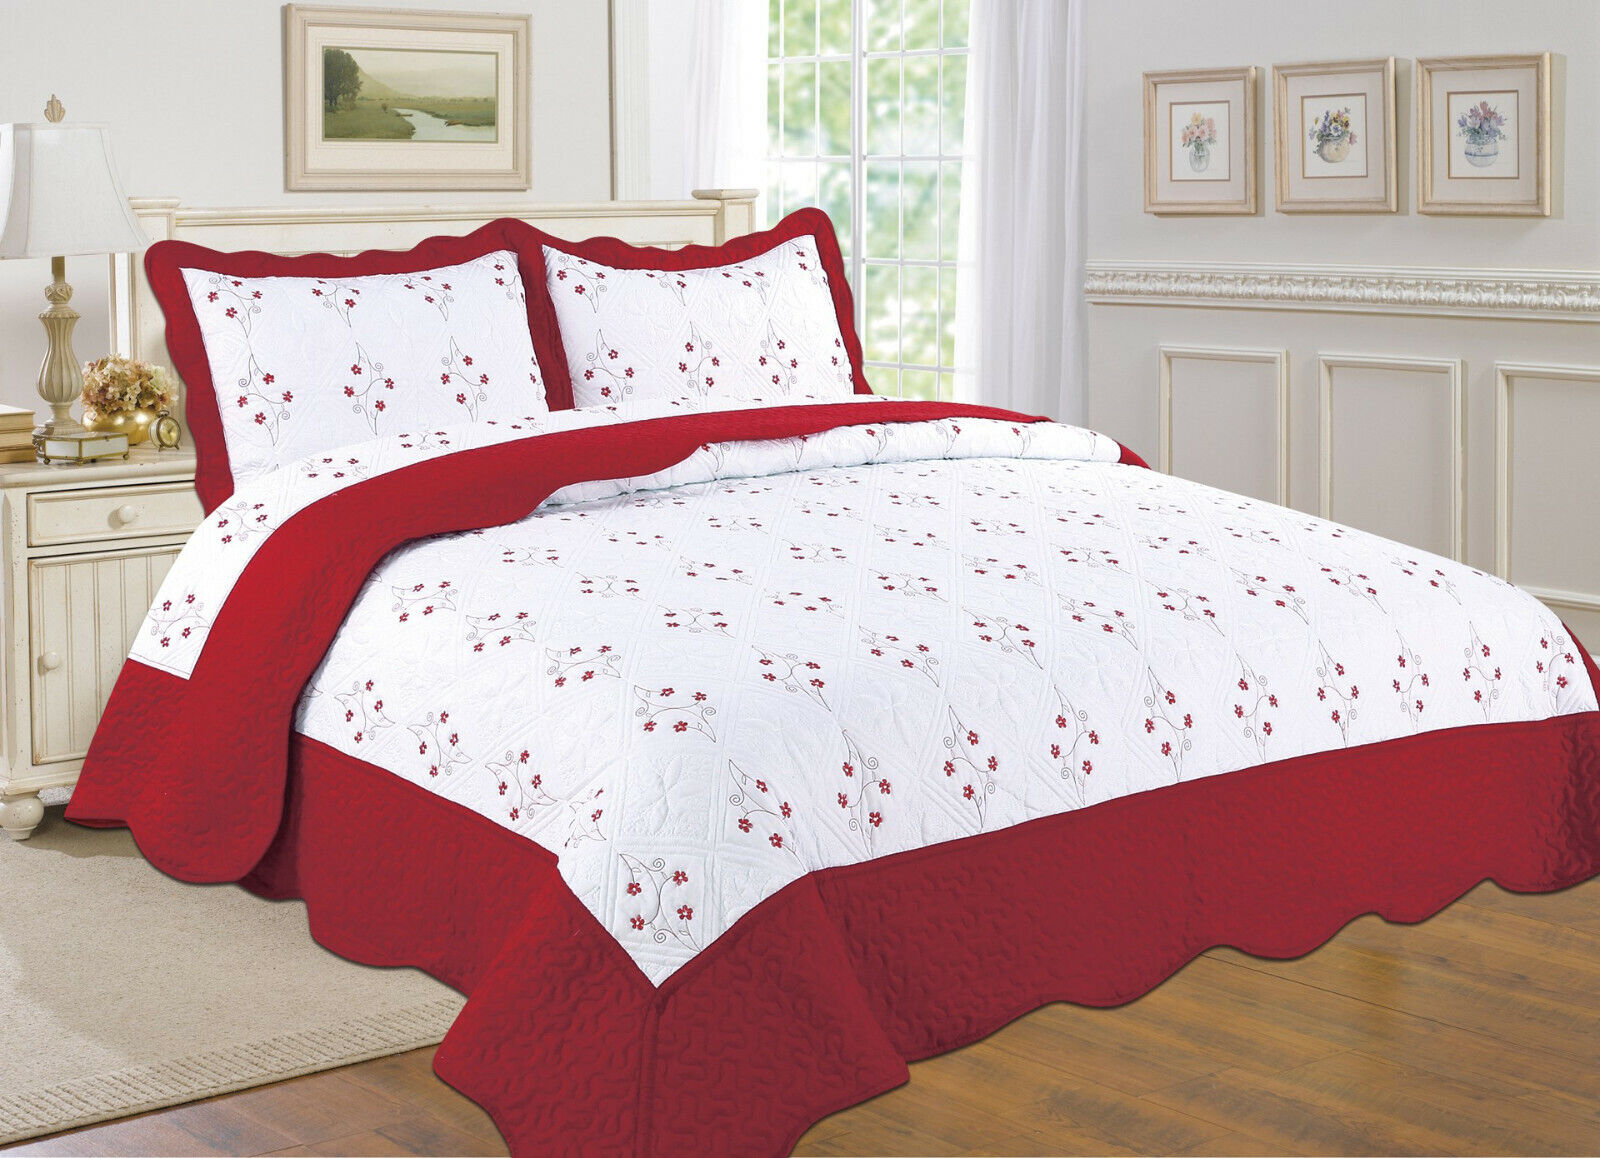 ALL FOR YOU Reversible Bedspread, Coverlet,Quilt *X* Red Chr